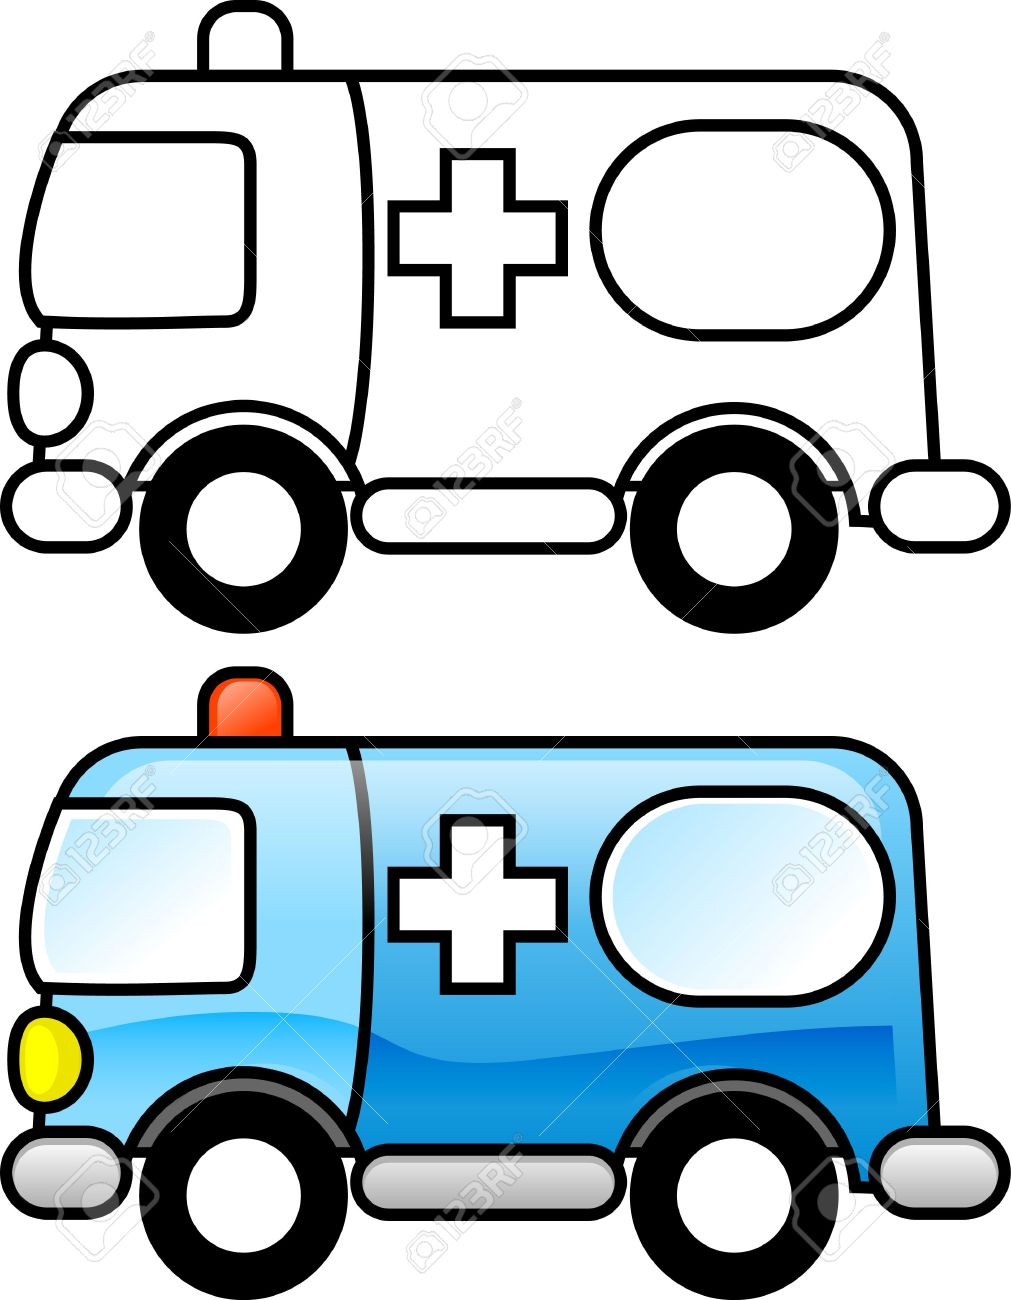 Ambulance - Printable Coloring Page For Children Or You Can Use ...